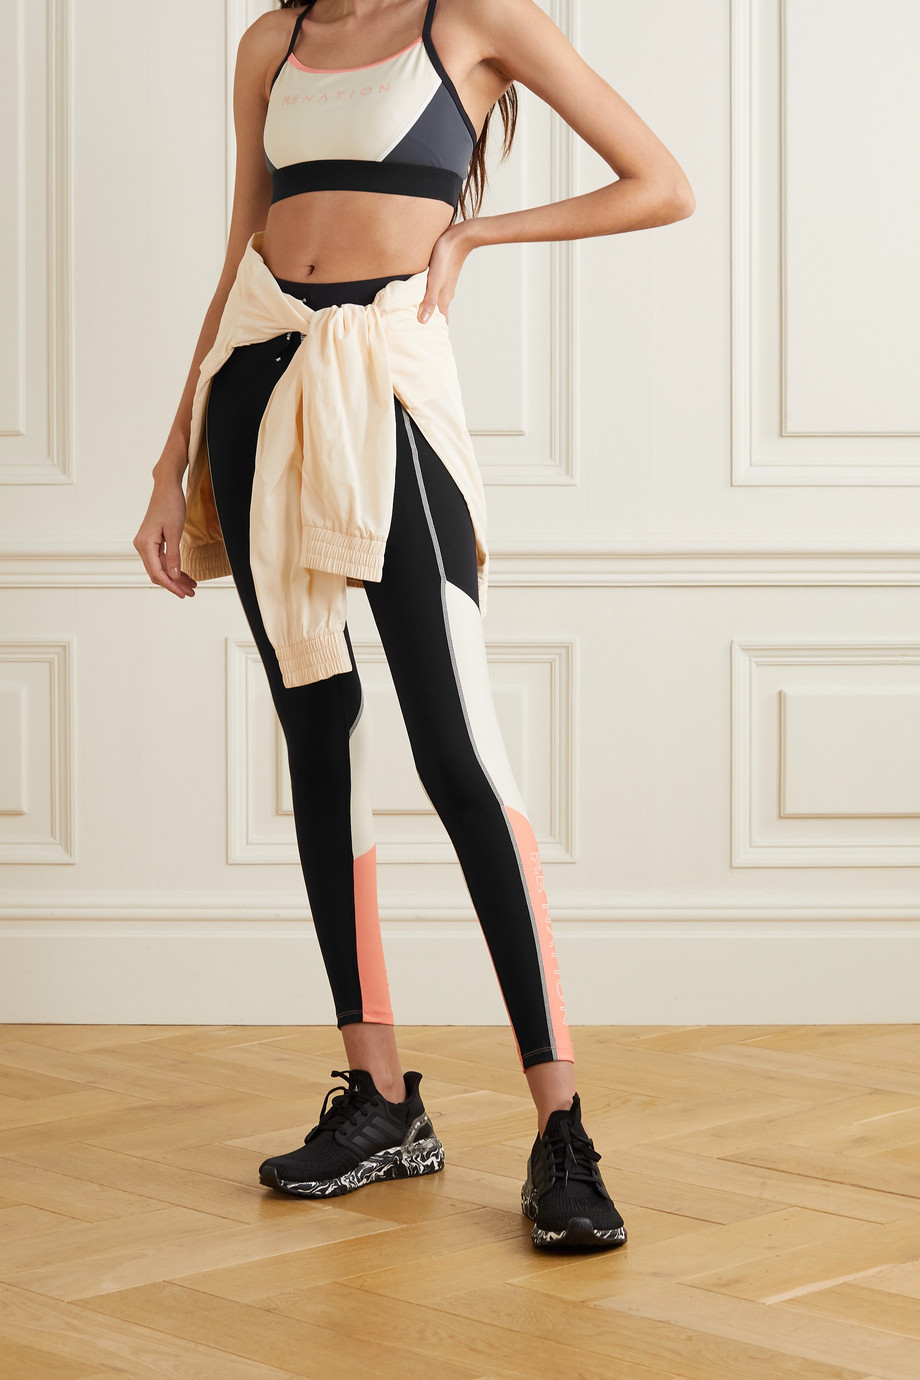 P.E NATION Forward Pass bedruckte Stretch-Leggings in Colour-Block-Optik